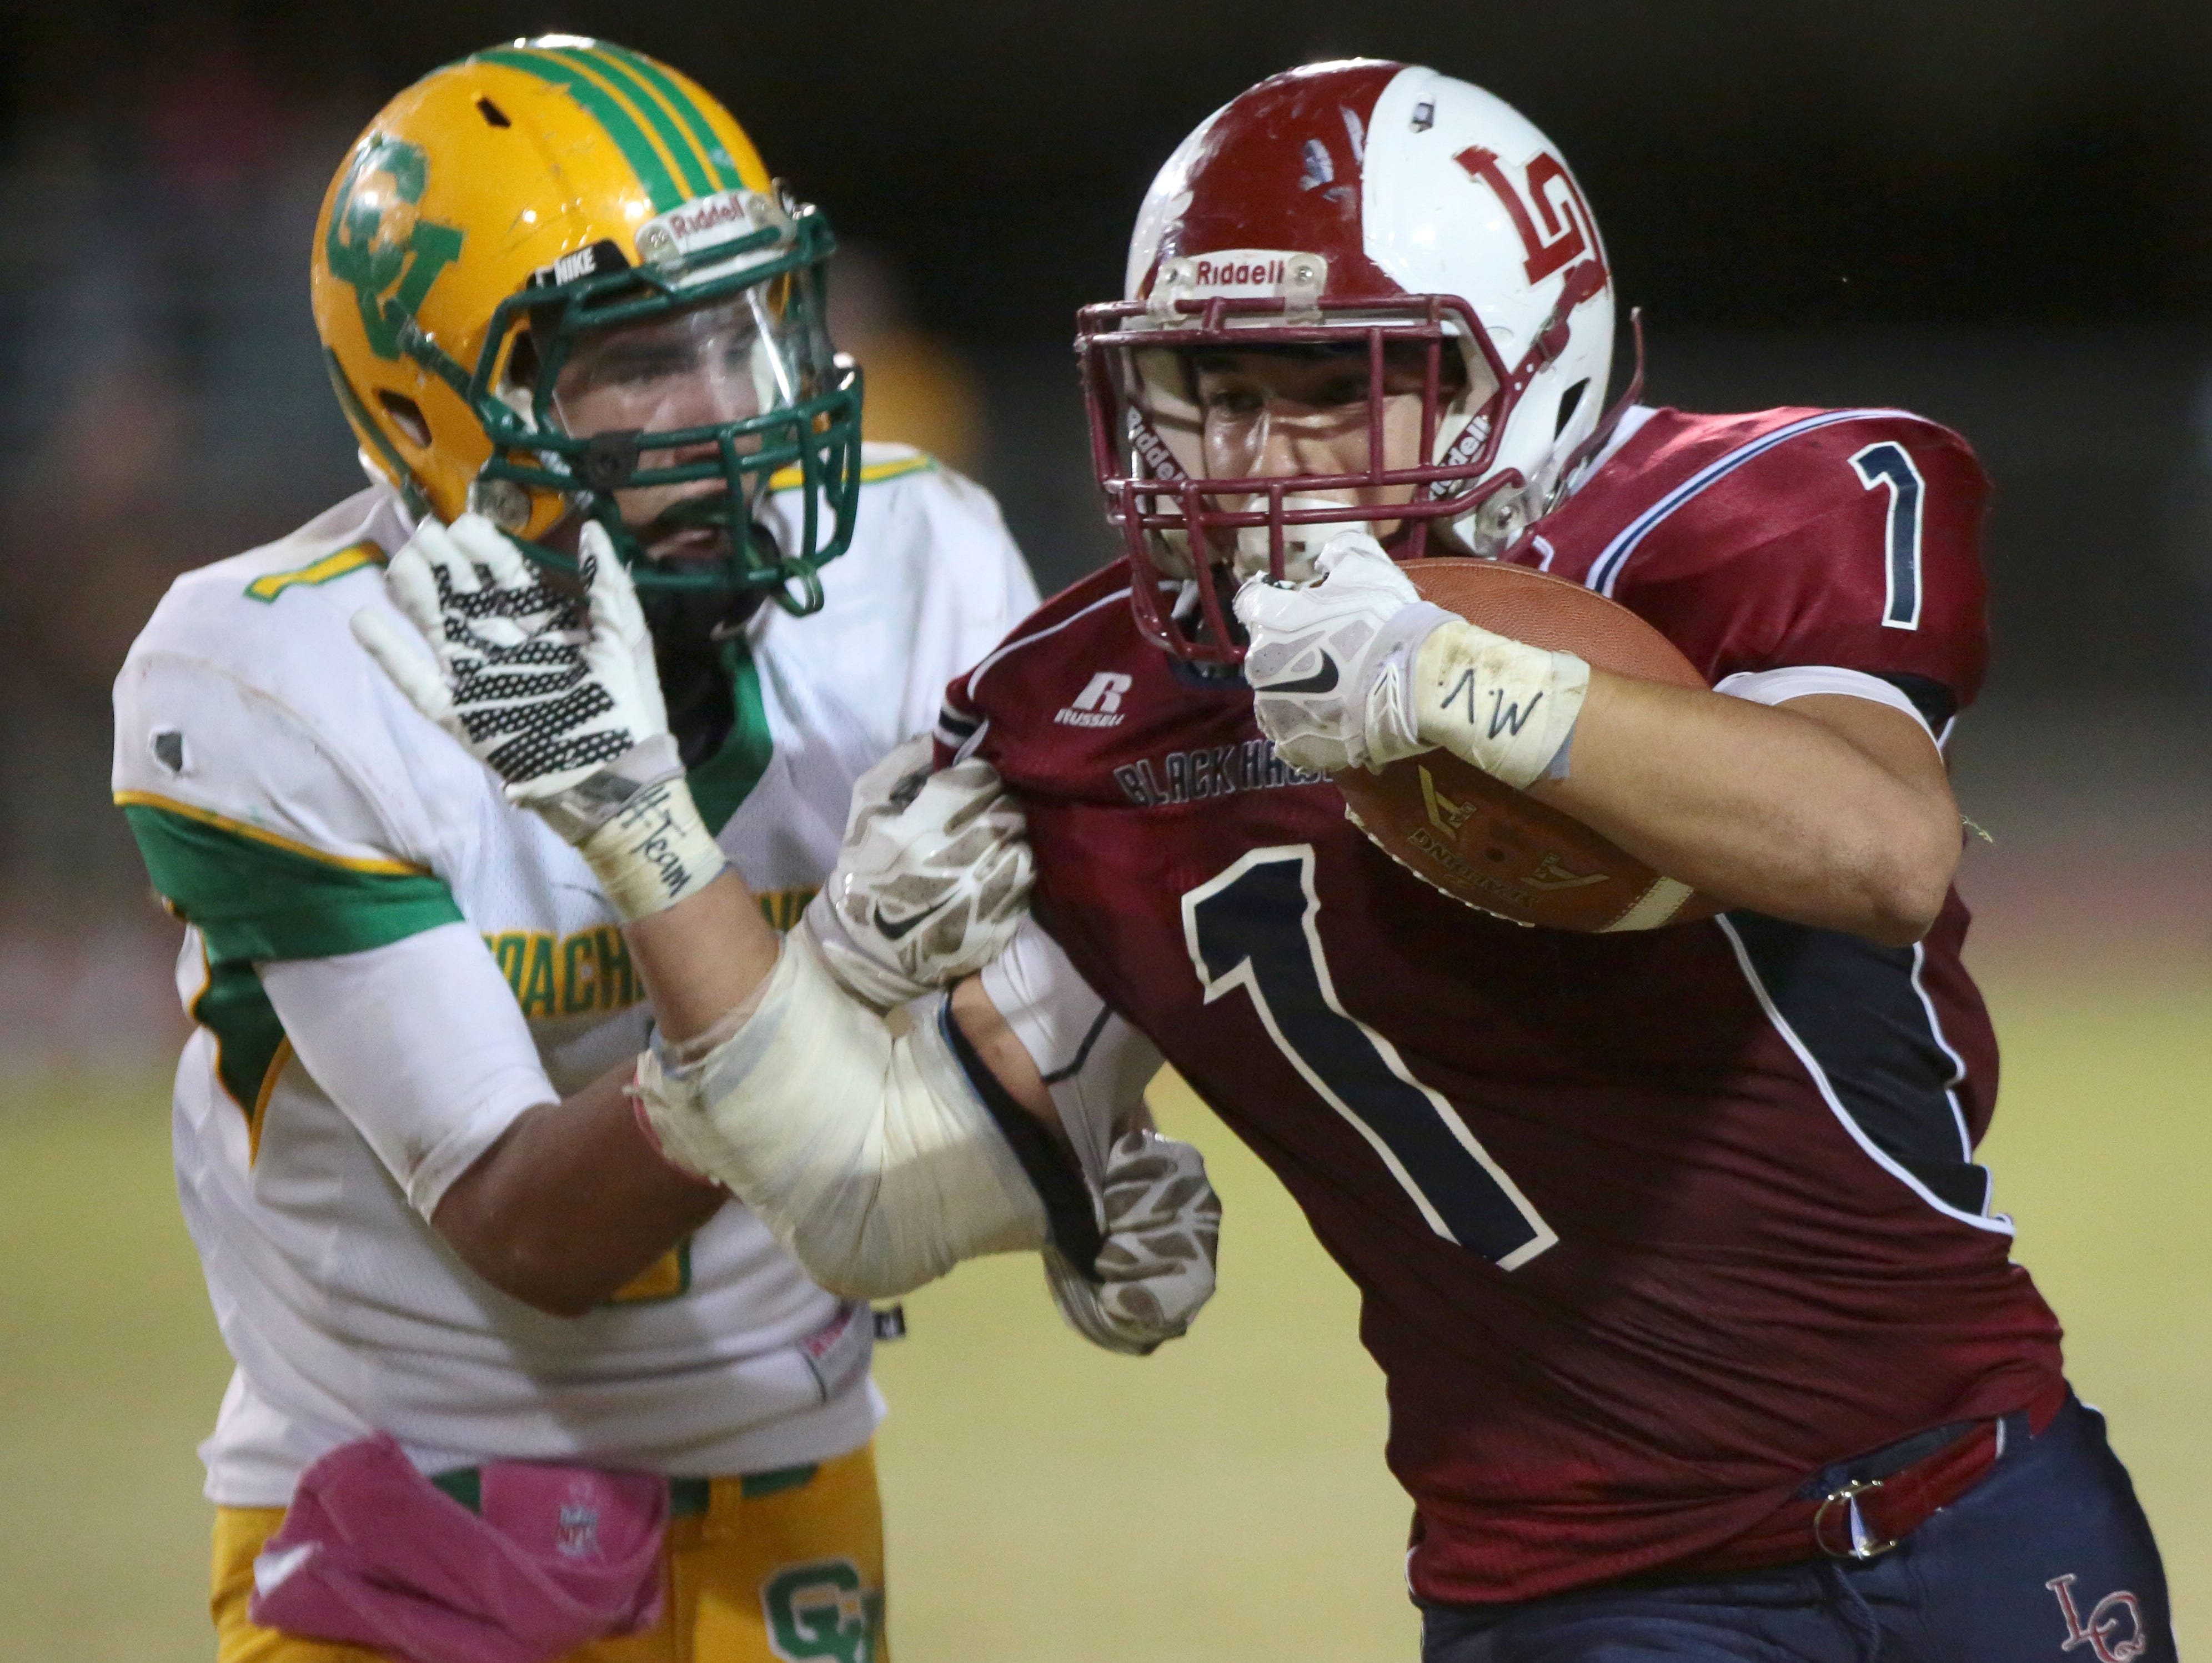 La Quinta's Benji Cordova carries the ball for a first down against Coachella Valley on Friday.